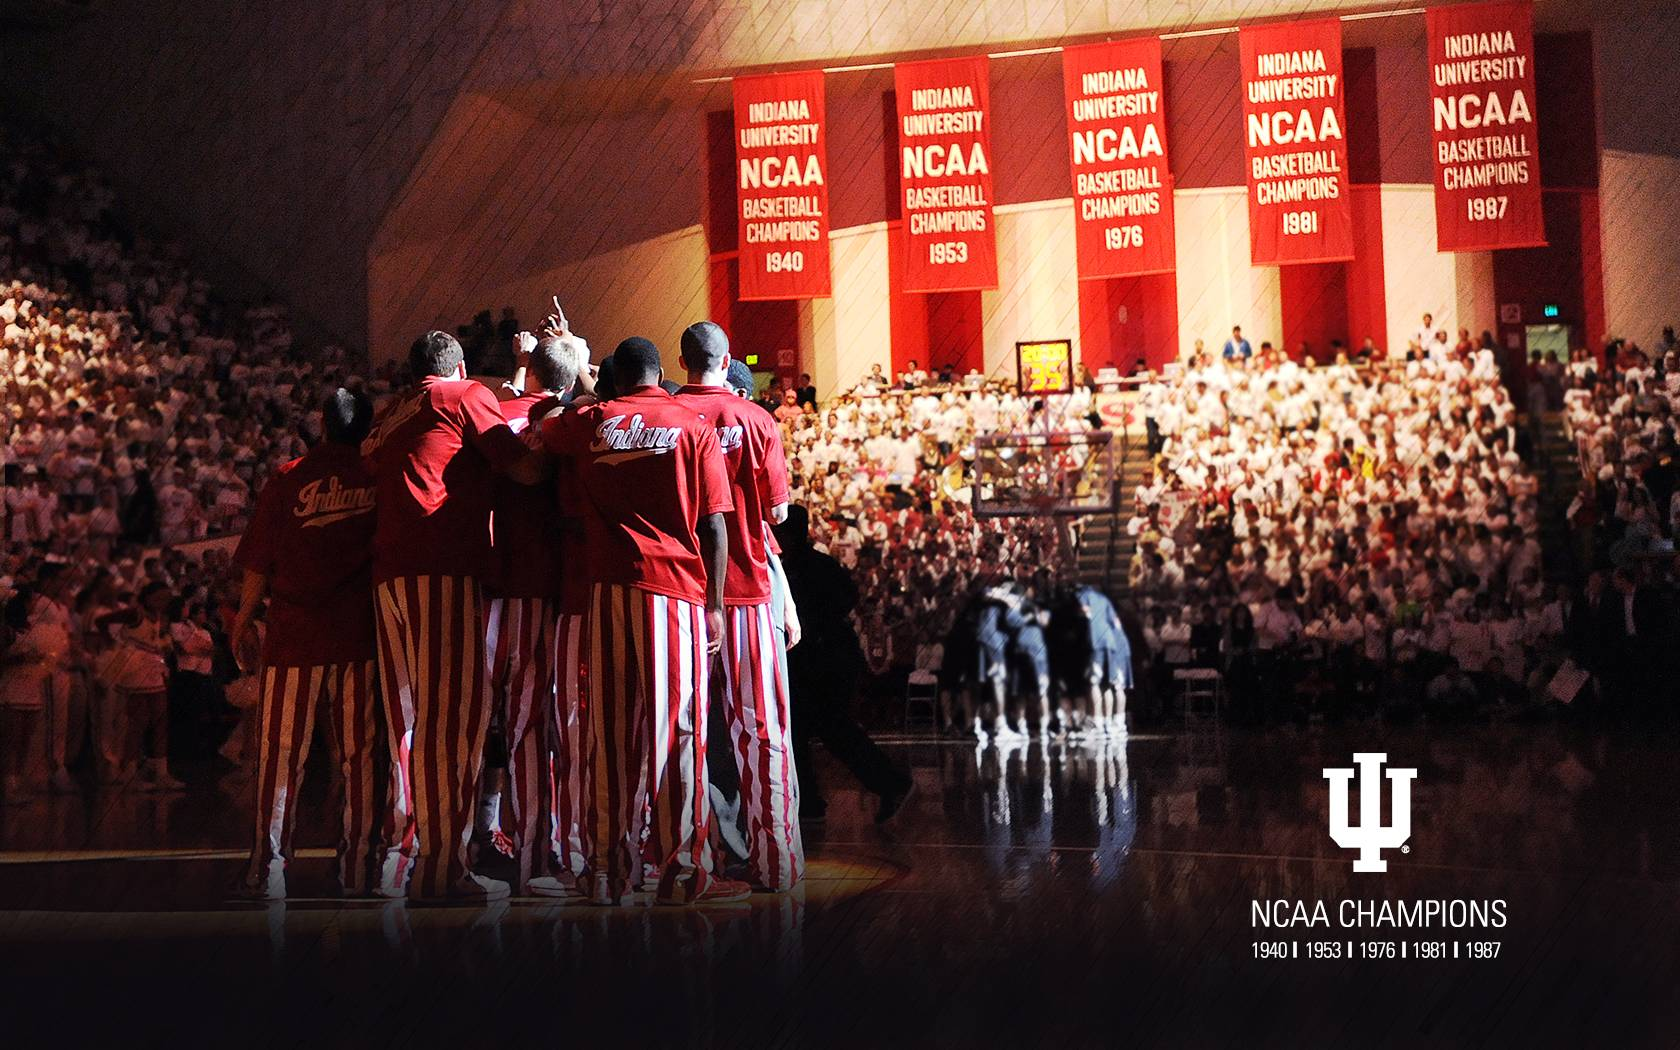 Indiana University Basketball Wallpaper